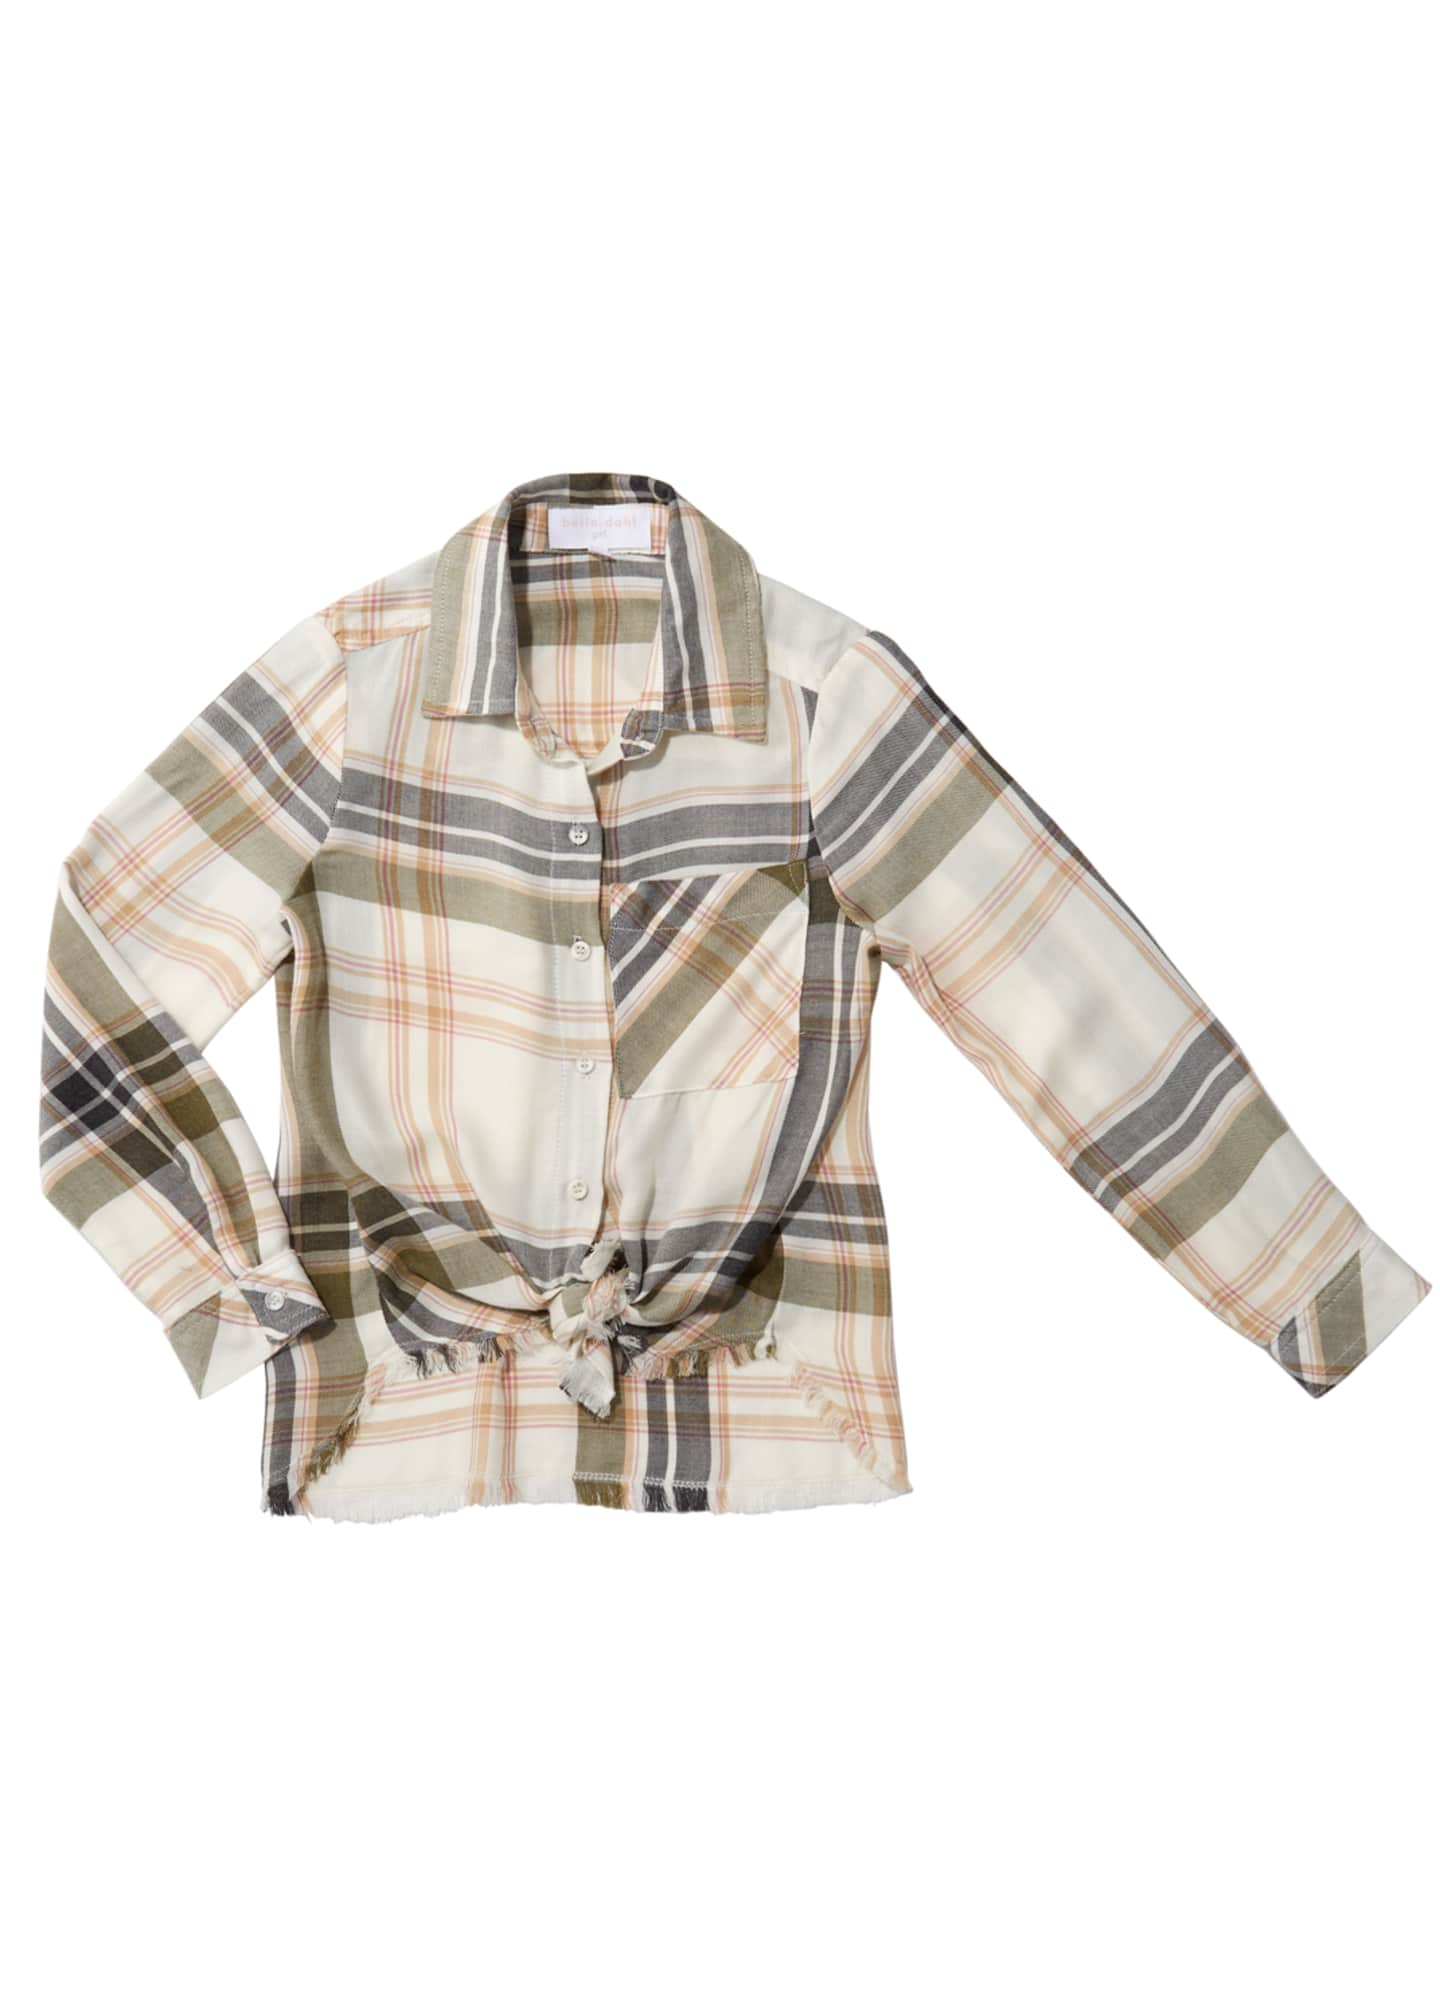 Bella Dahl Frayed Tie-Front Plaid Shirt, Size 8-14